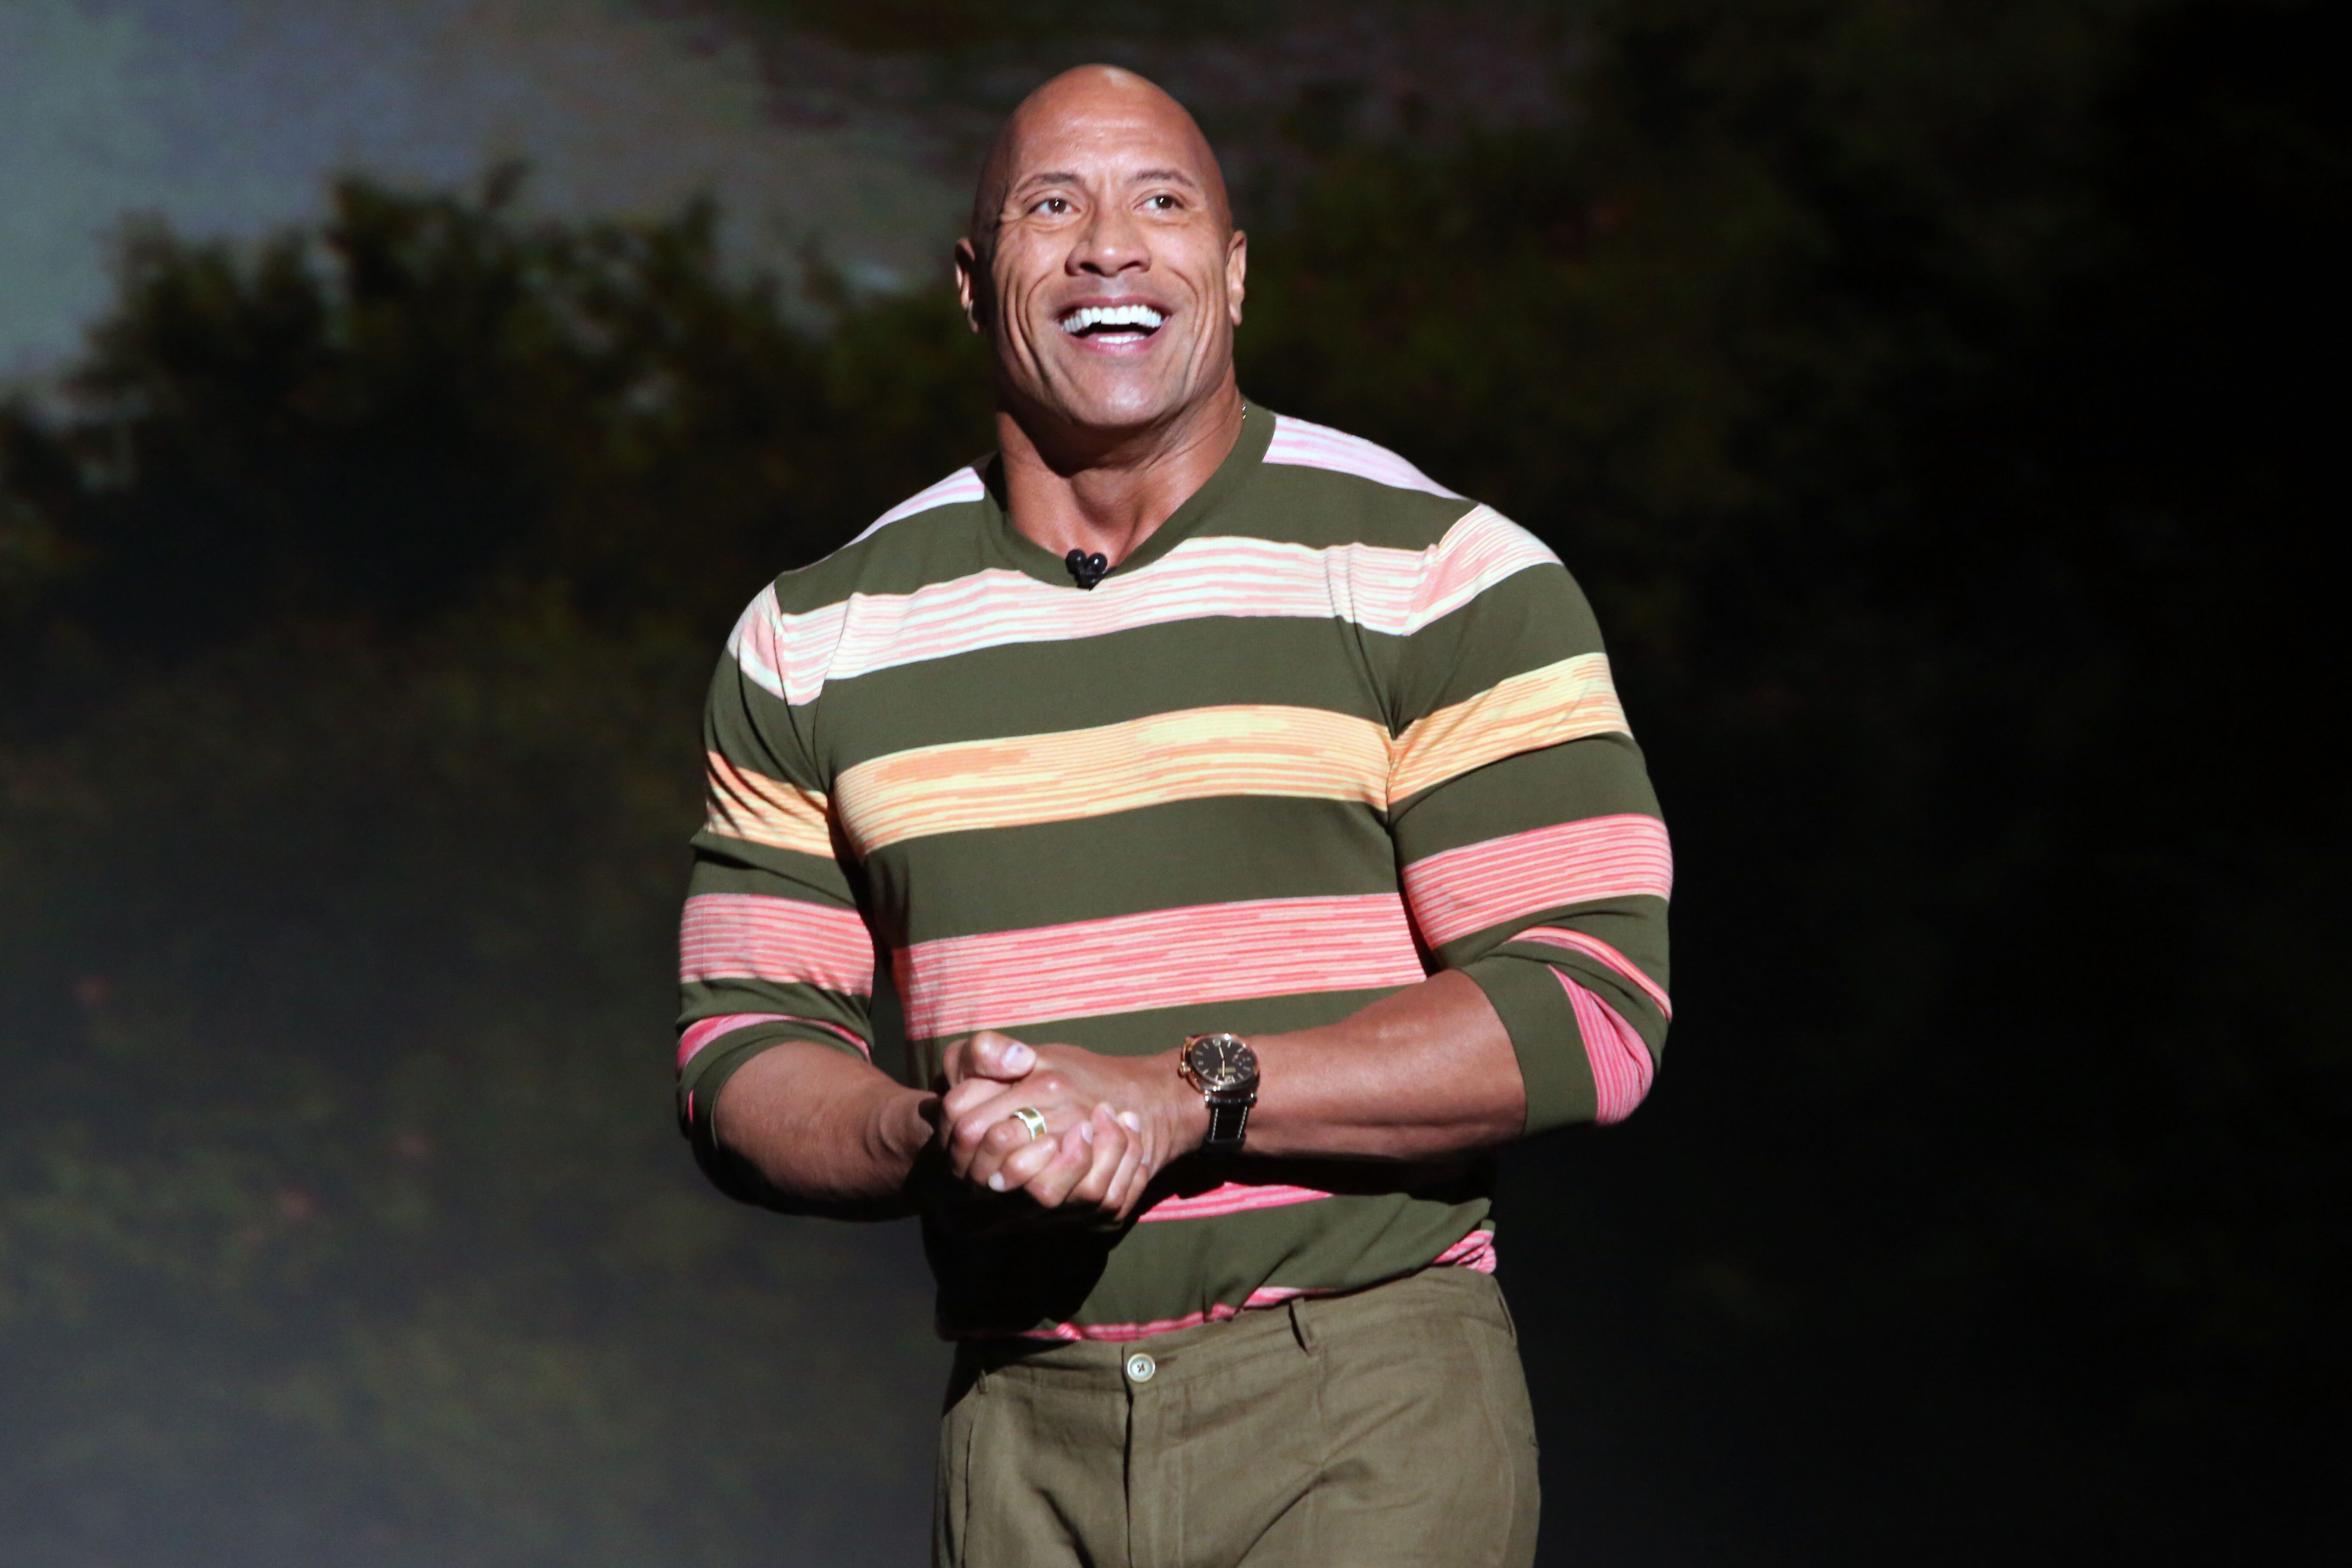 Dwayne Johnson at the Walt Disney Studios presentation in Anaheim, California on August 24, 2019 | Photo: Jesse Grant/Getty Images